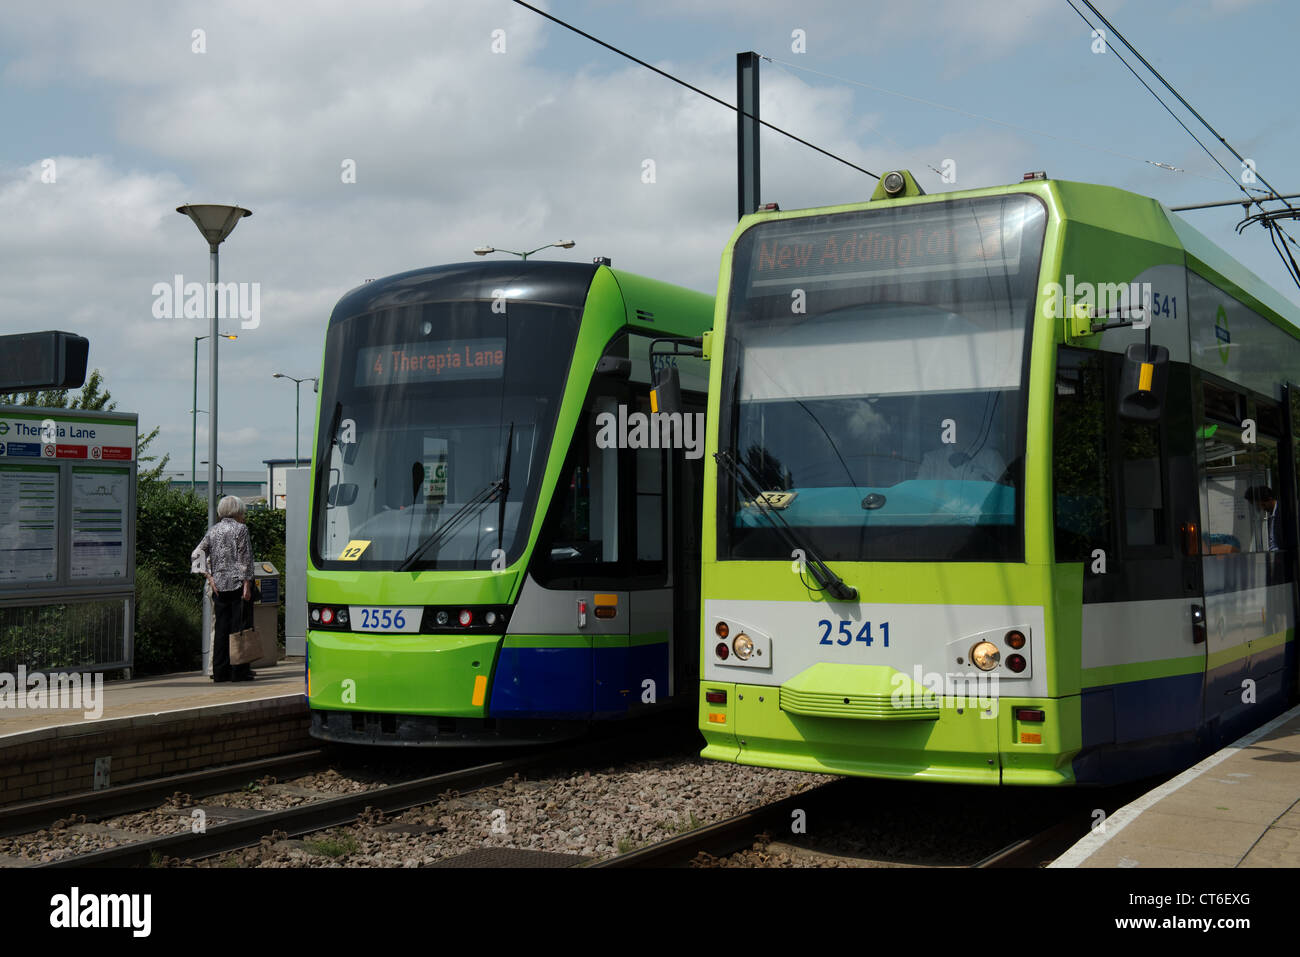 Old and New Croydon Trams at Therapia Lane Stop -1 - Stock Image